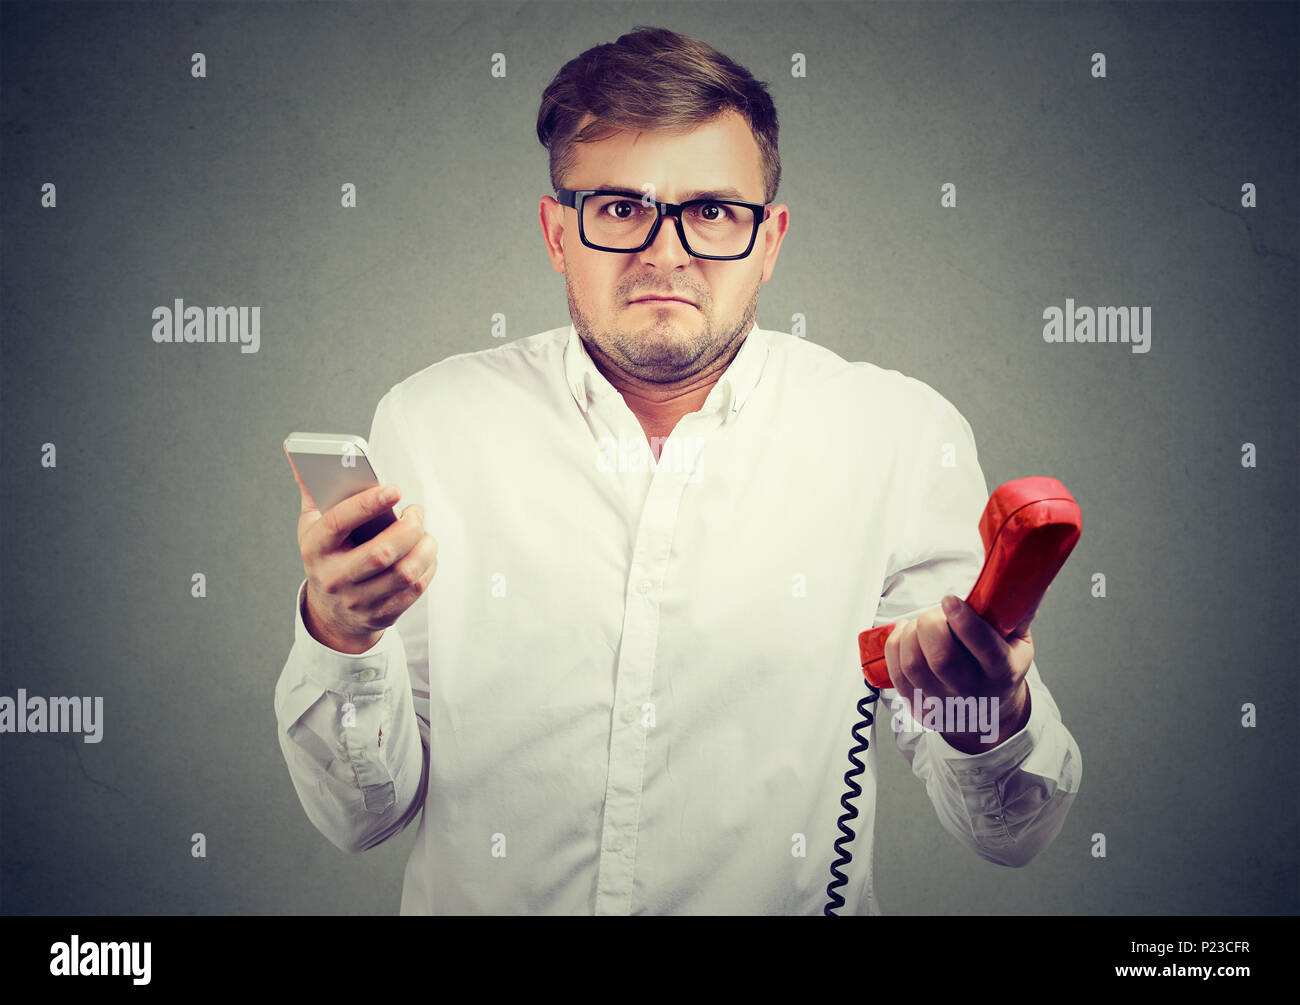 Young man holding old-fashioned red phone and modern smarpthone looking at camera in puzzlement. - Stock Image